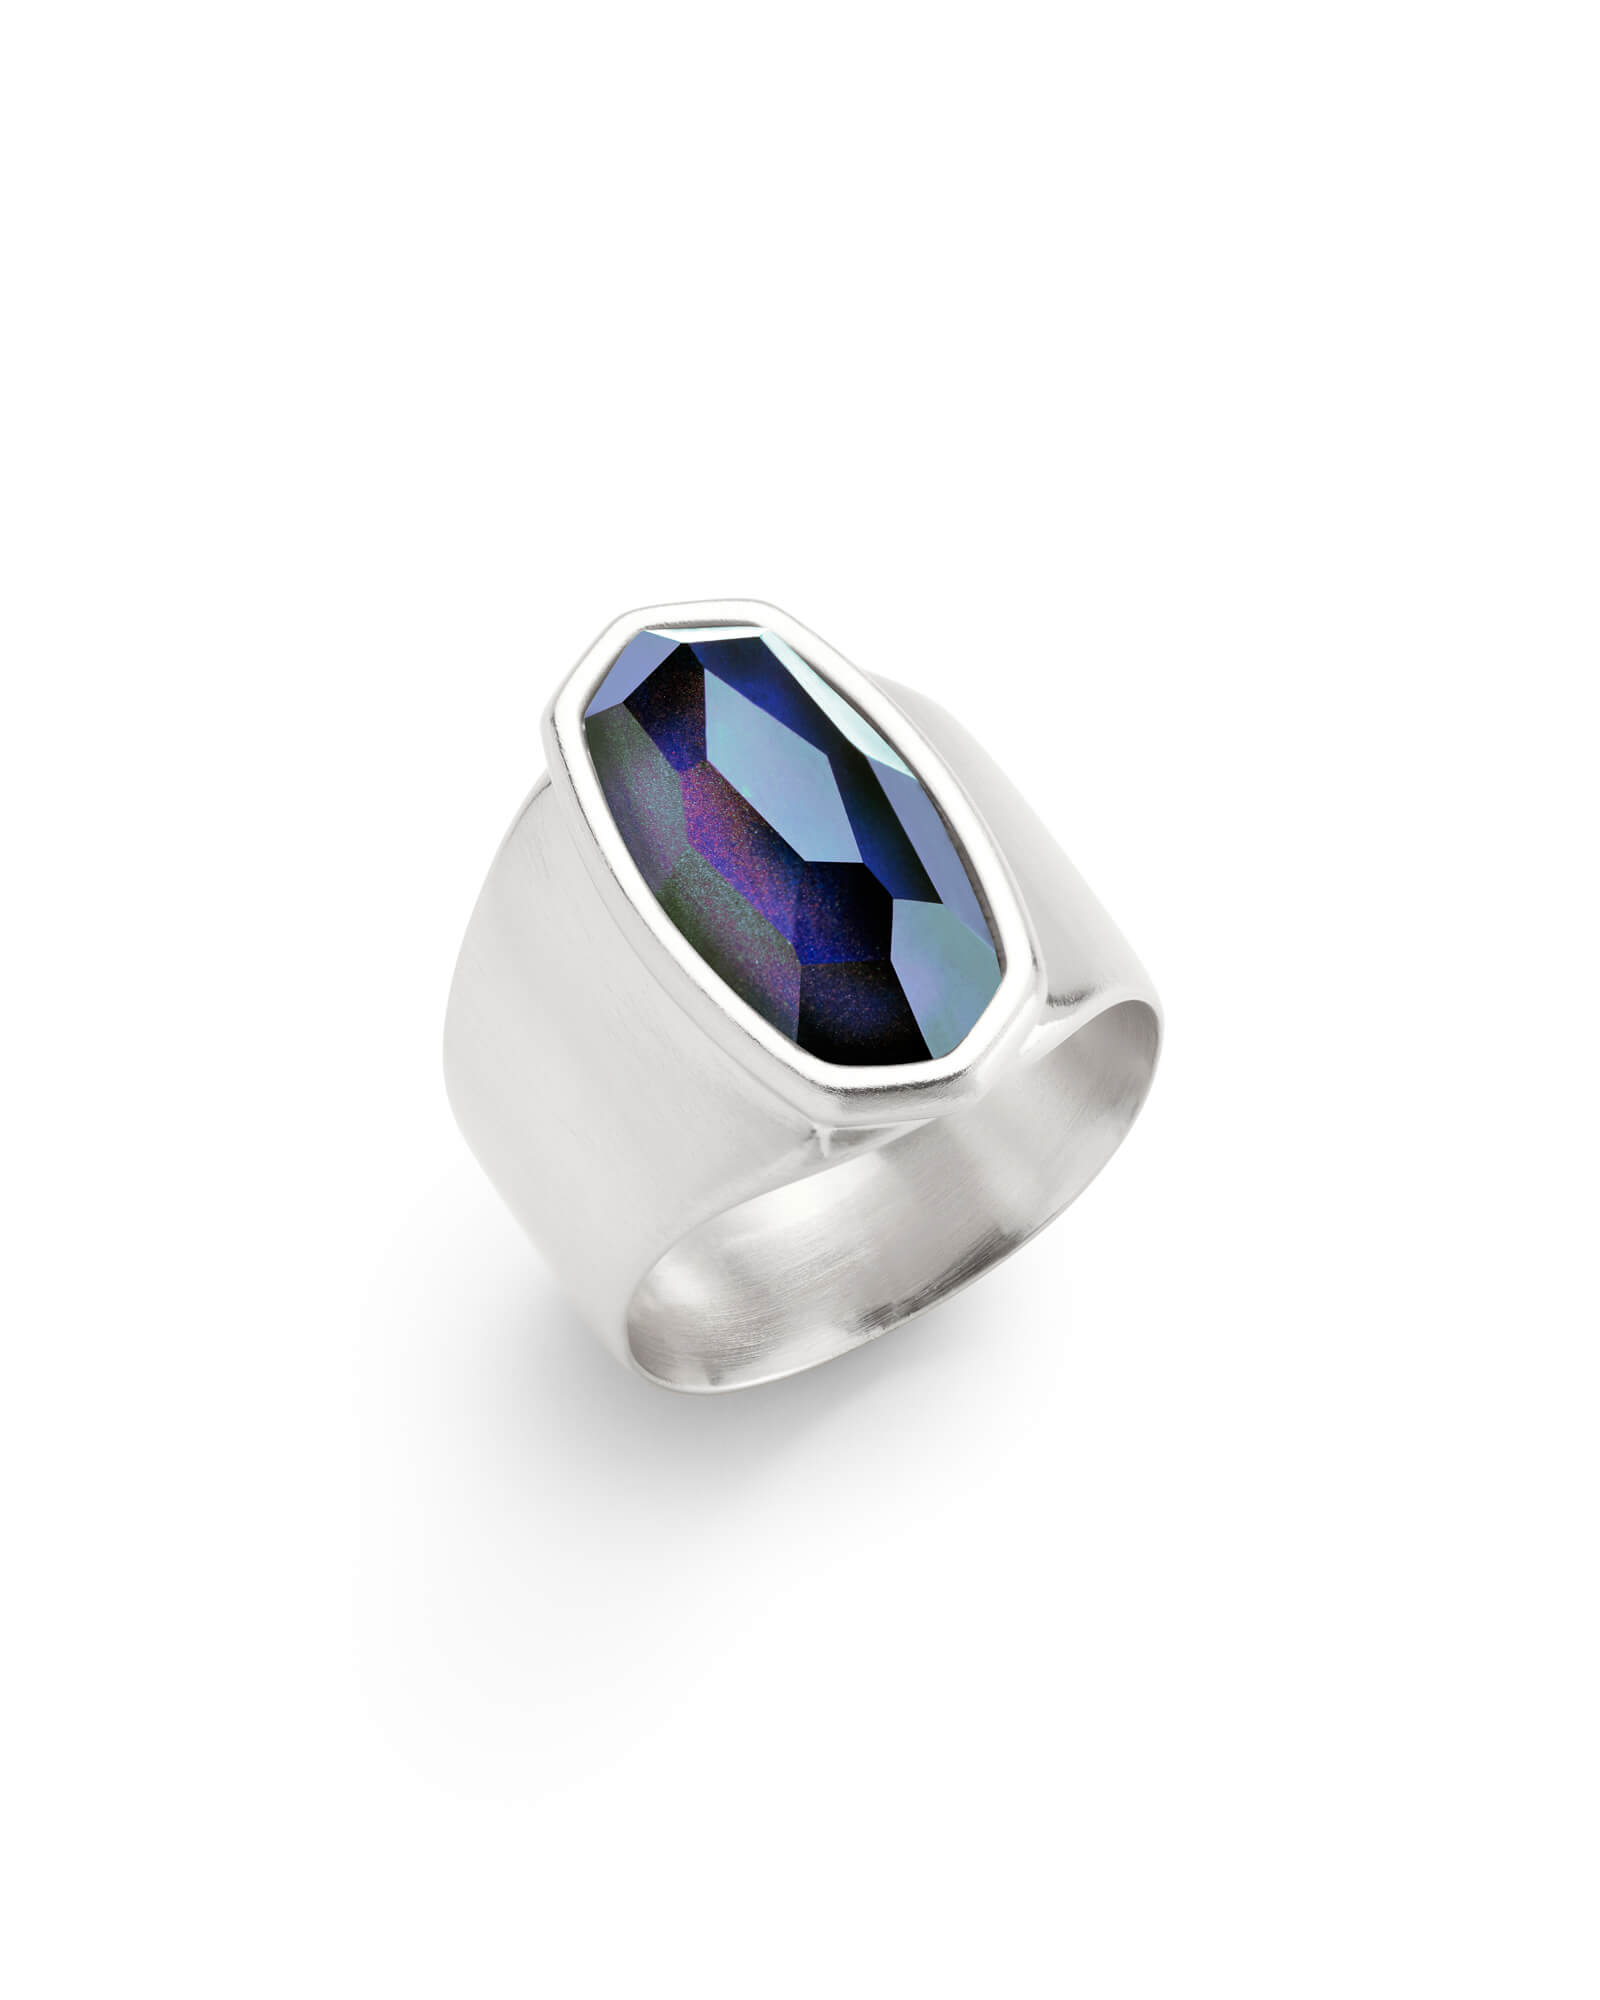 Leah Mood Stone Ring in Silver